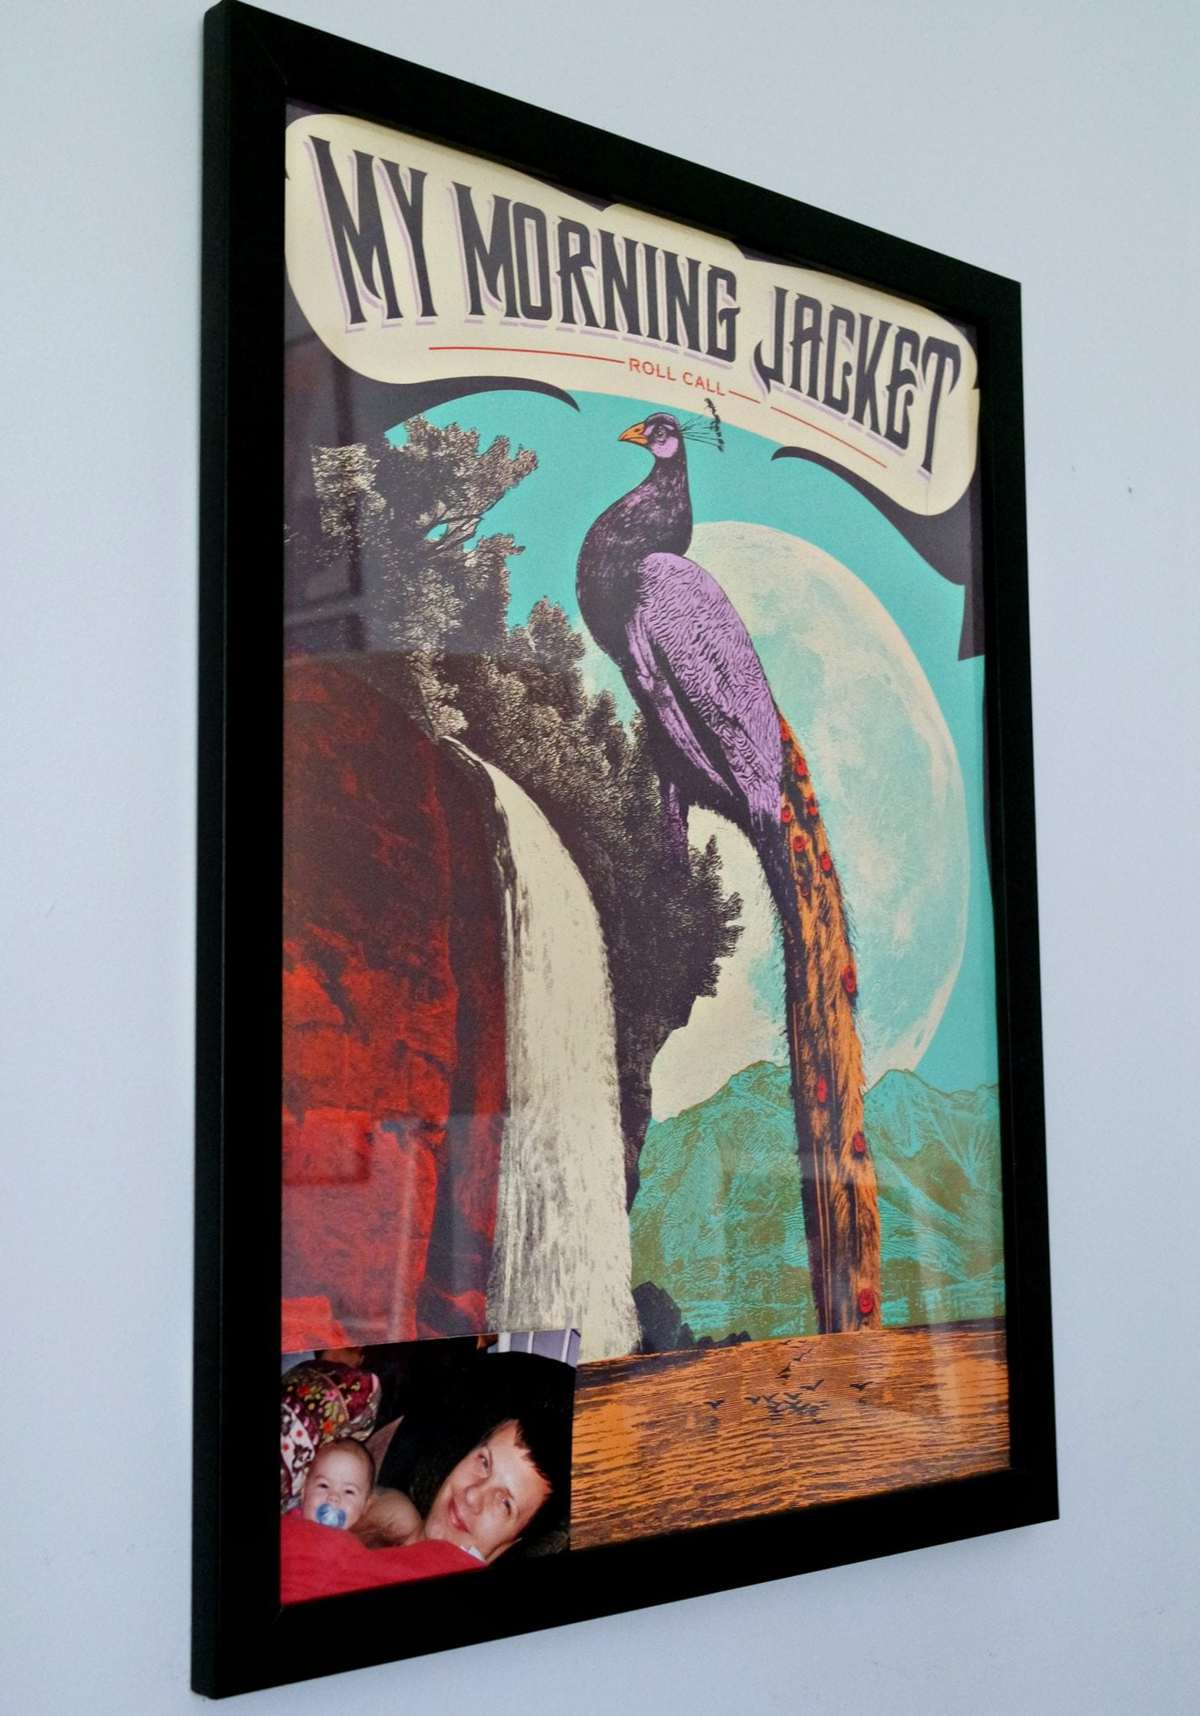 My Morning Jacket Poster Peacock